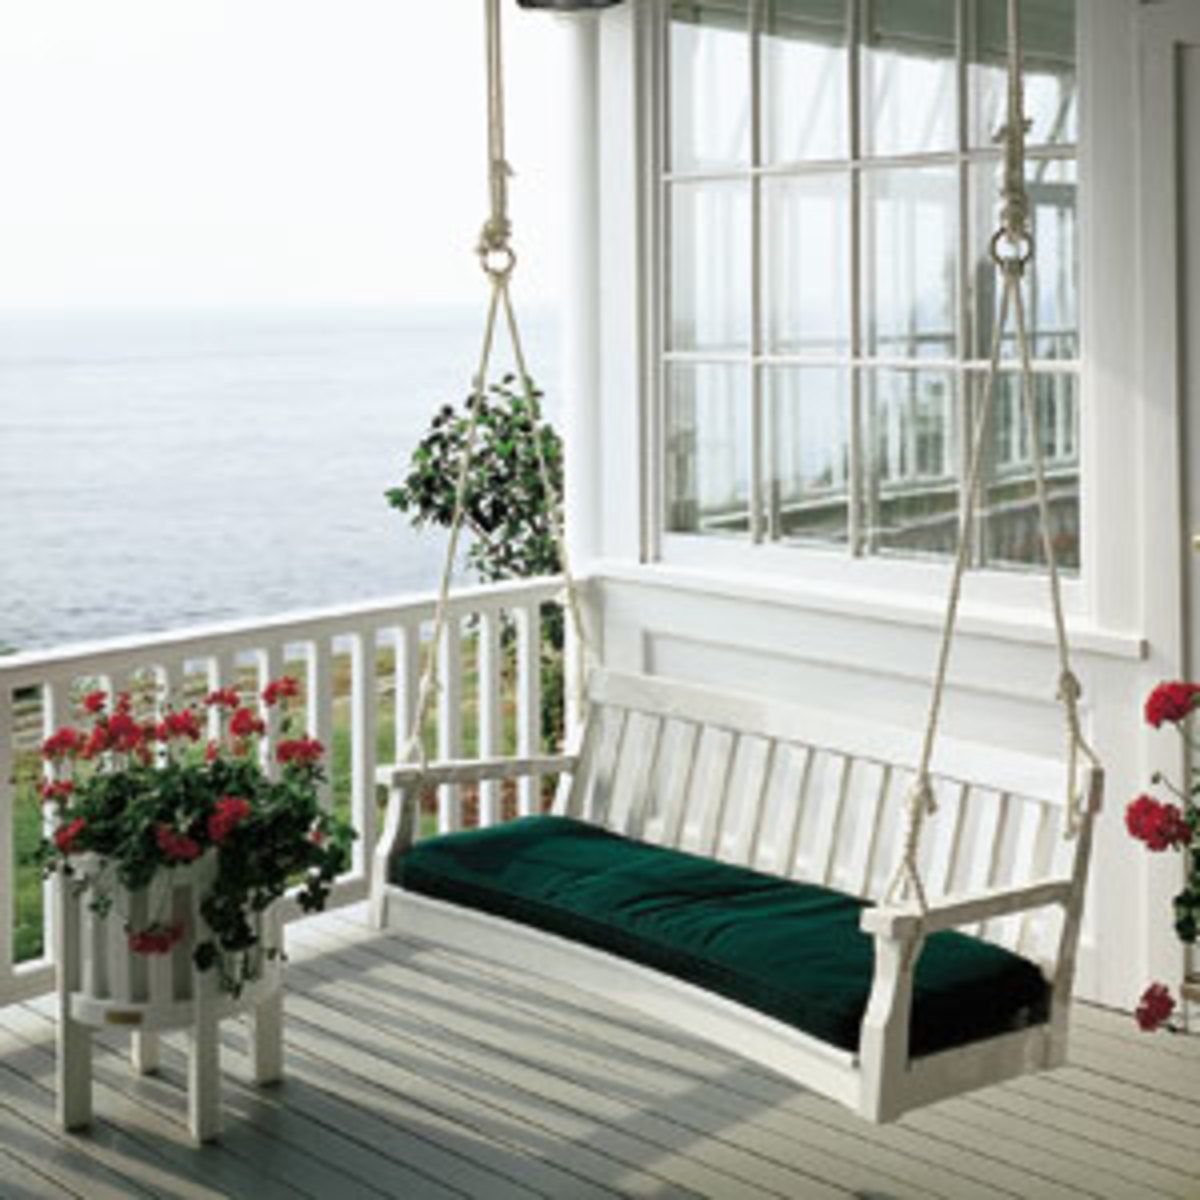 unfinished wood rocking chair justina hanging the fun of cottage style decorating starting with front porch | hubpages